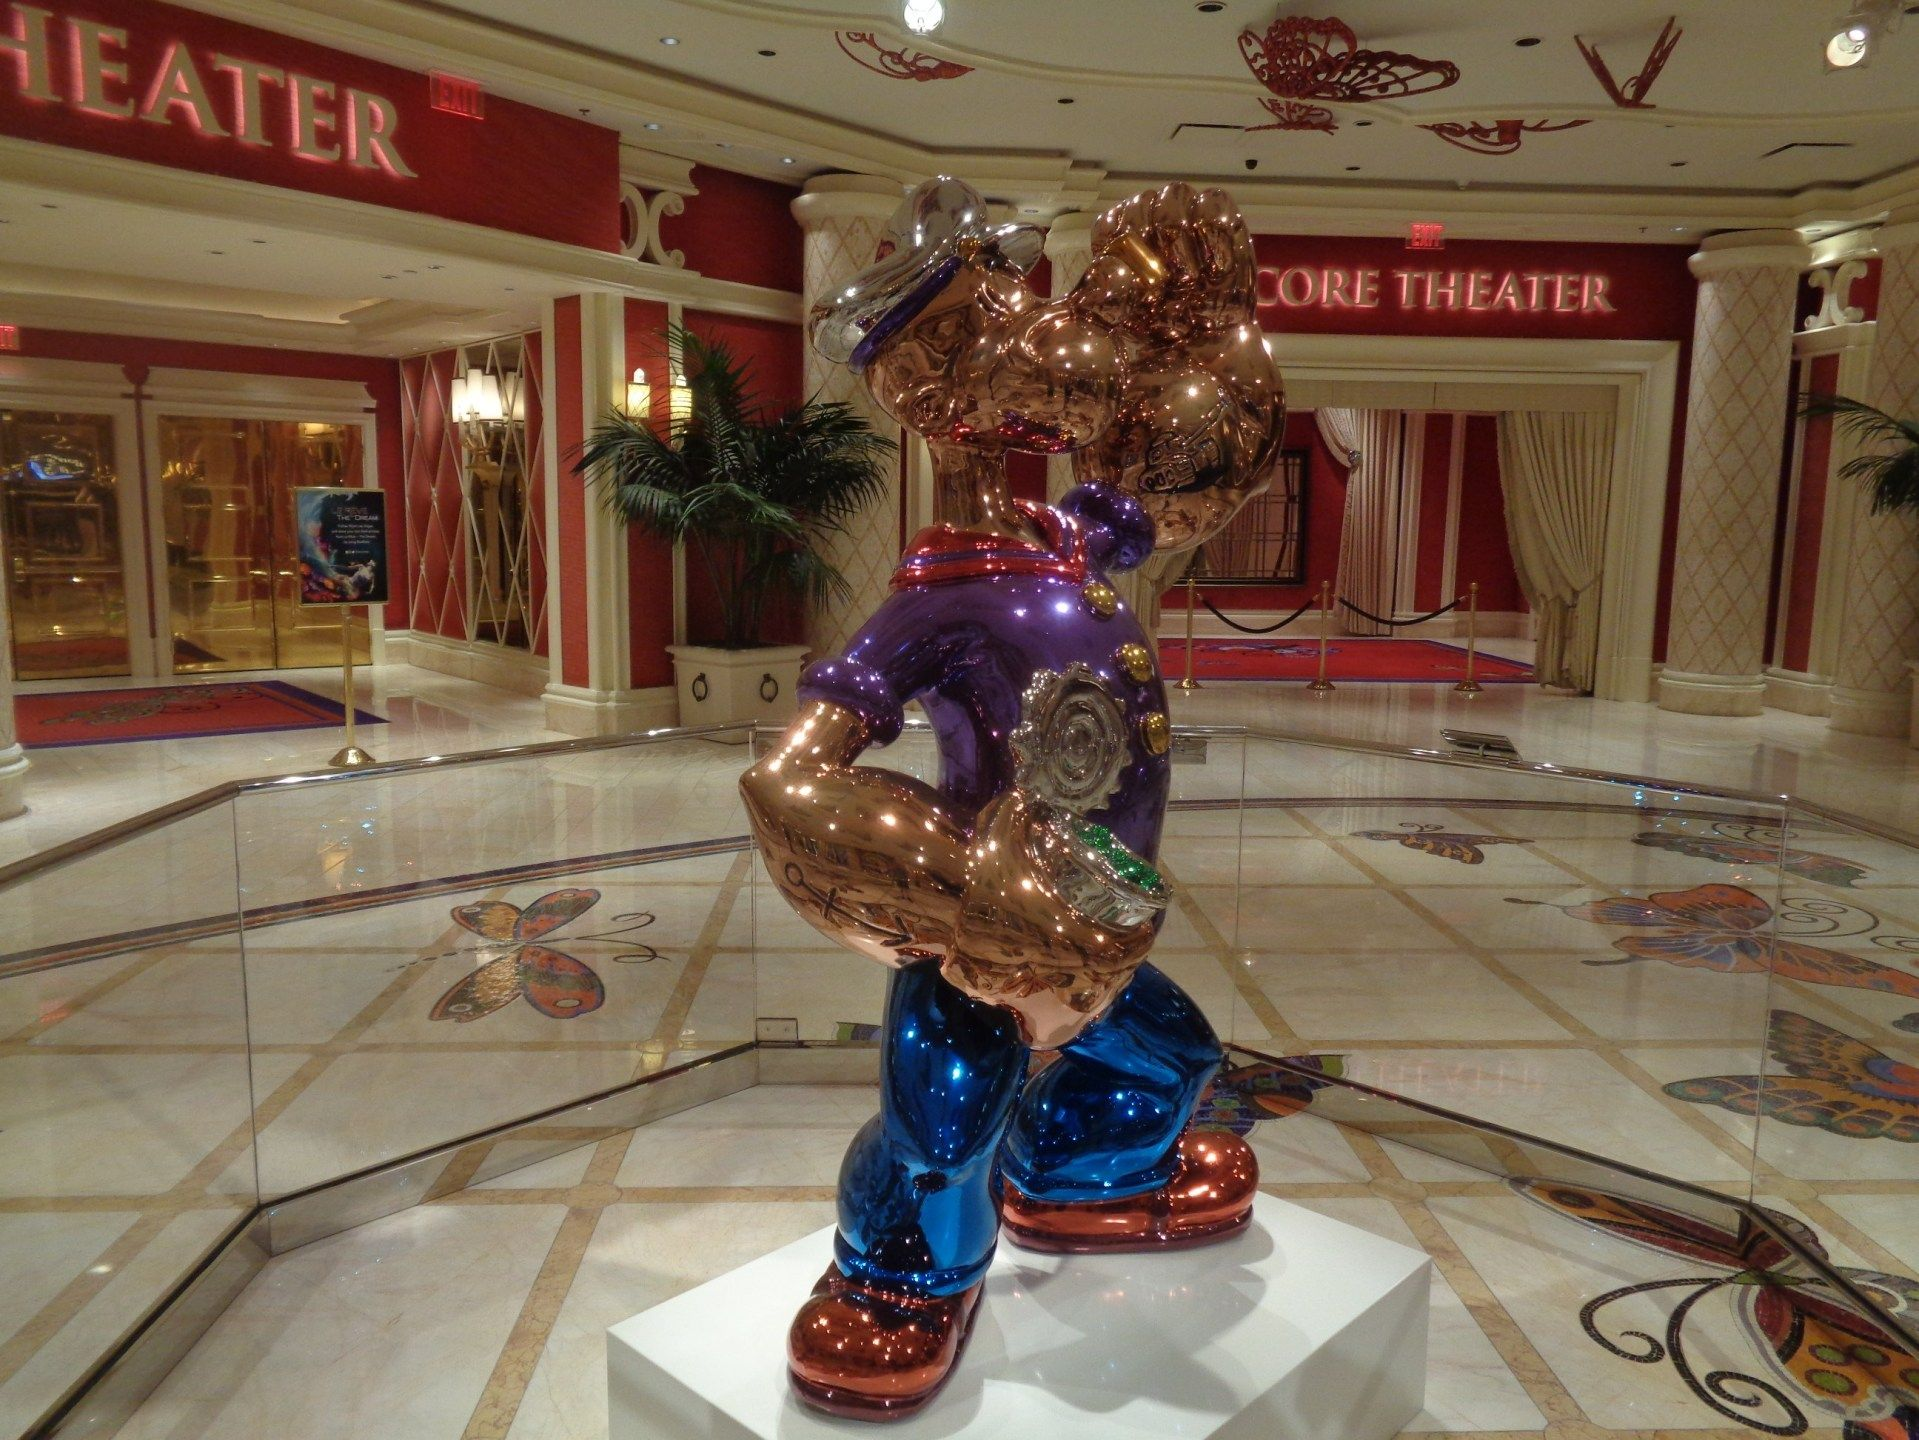 """Popeye"" sculpture by Jeff Koons sold for $28 million"